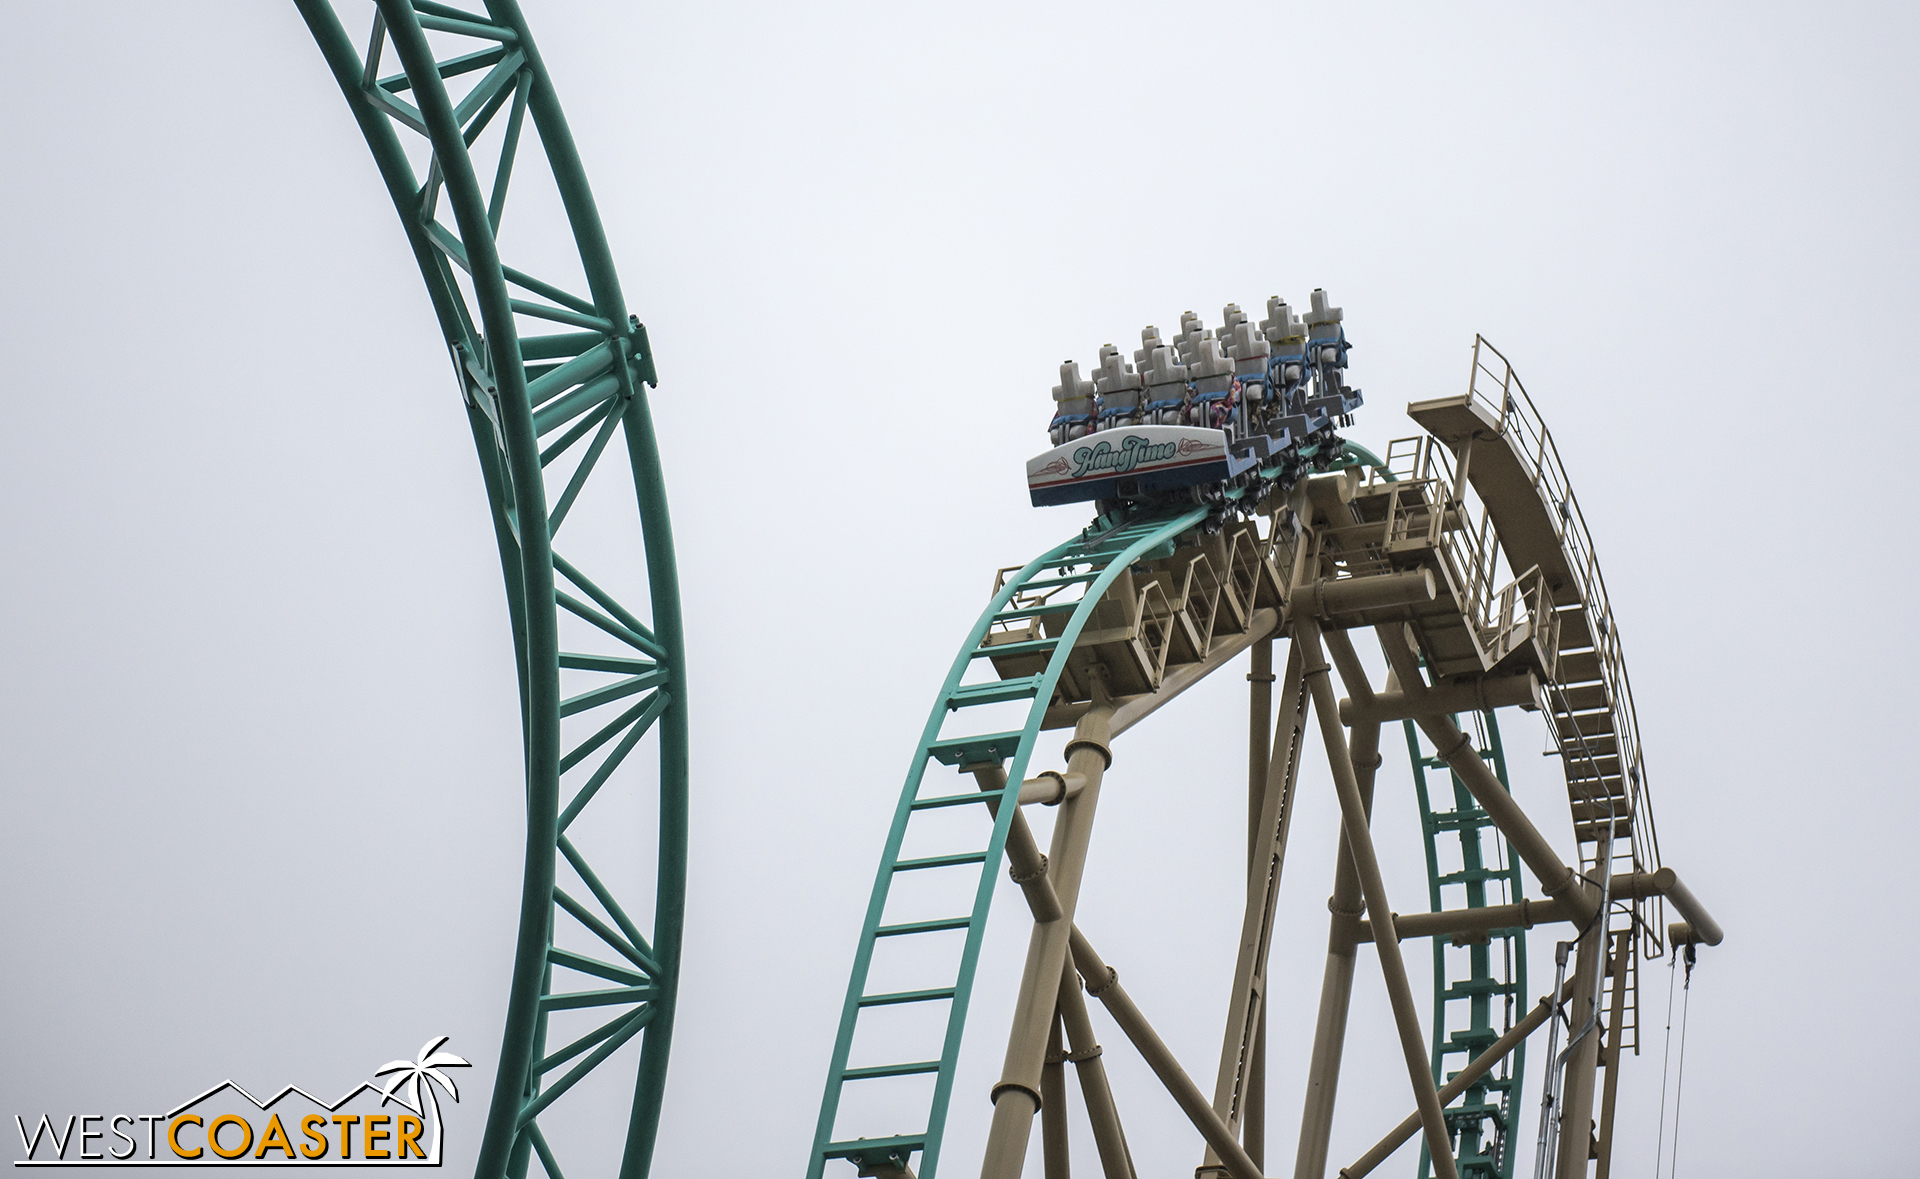 The coaster doesn't pause here as much as it slows down and sort of inches along before commencing its drop in proper.